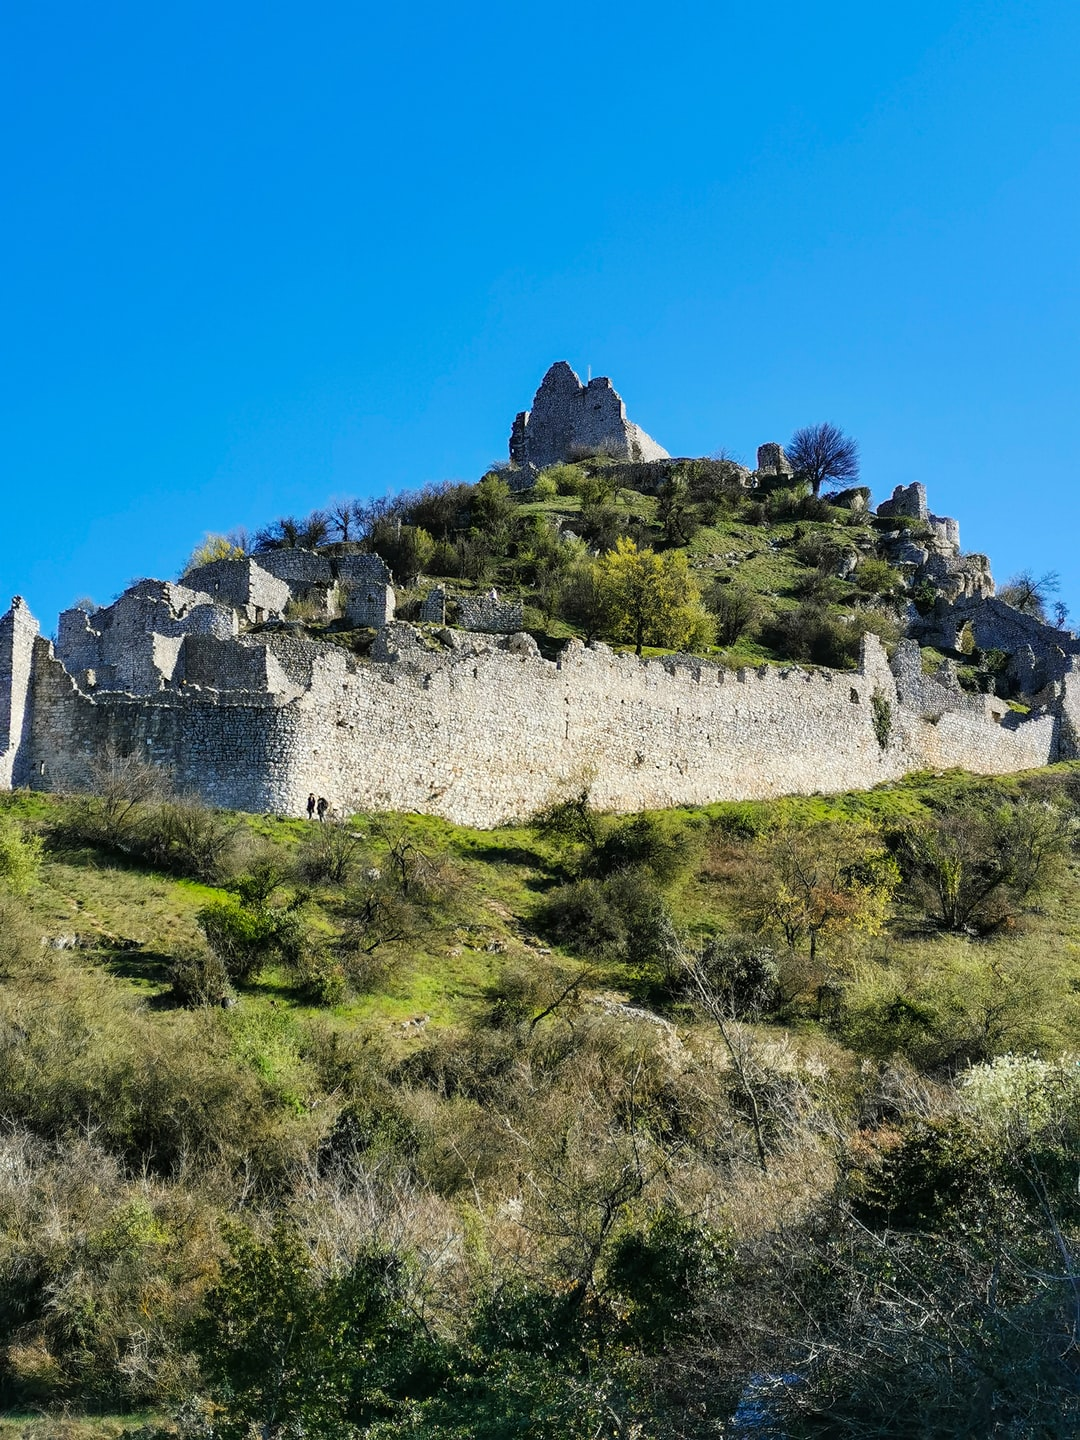 the castle at the top of the hill